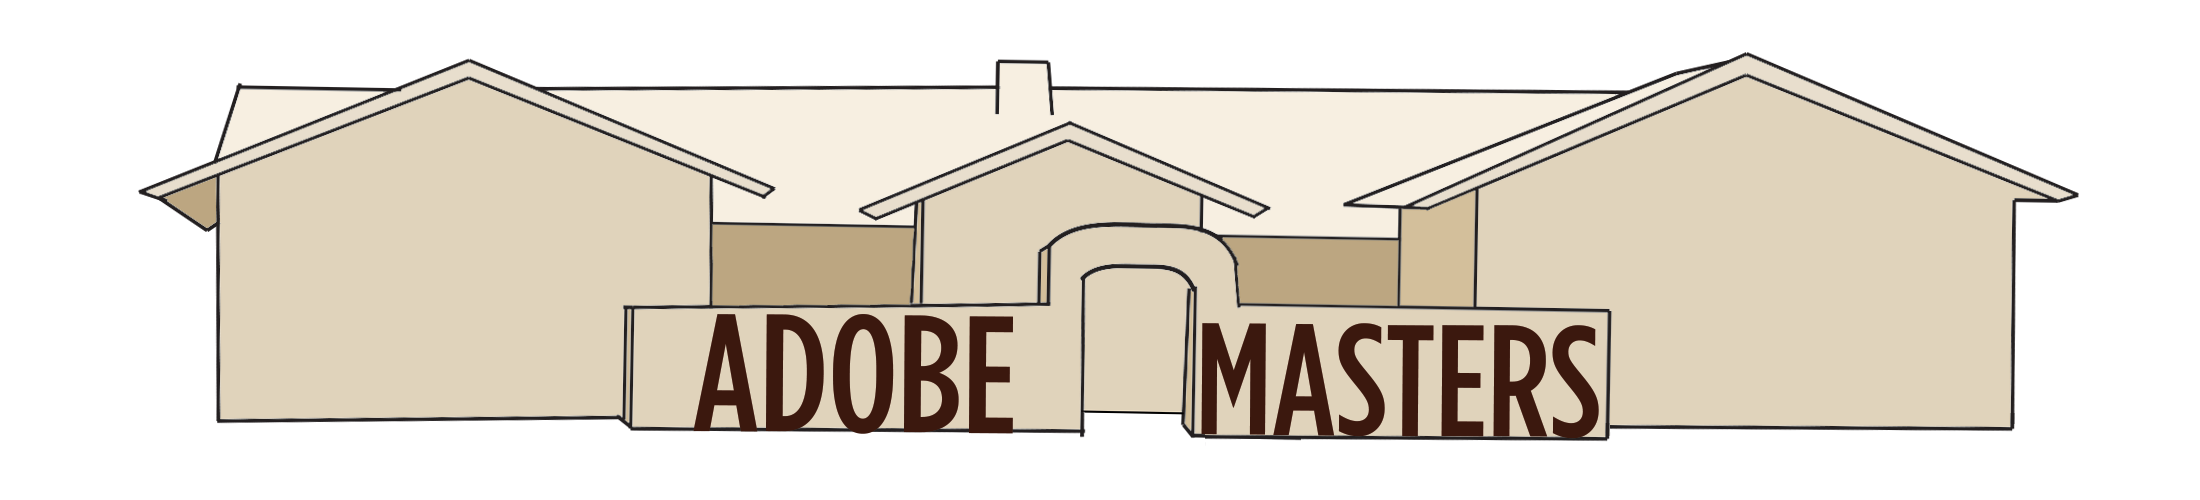 clip royalty free library Chapter two toggle navigation. Adobe clipart desert house